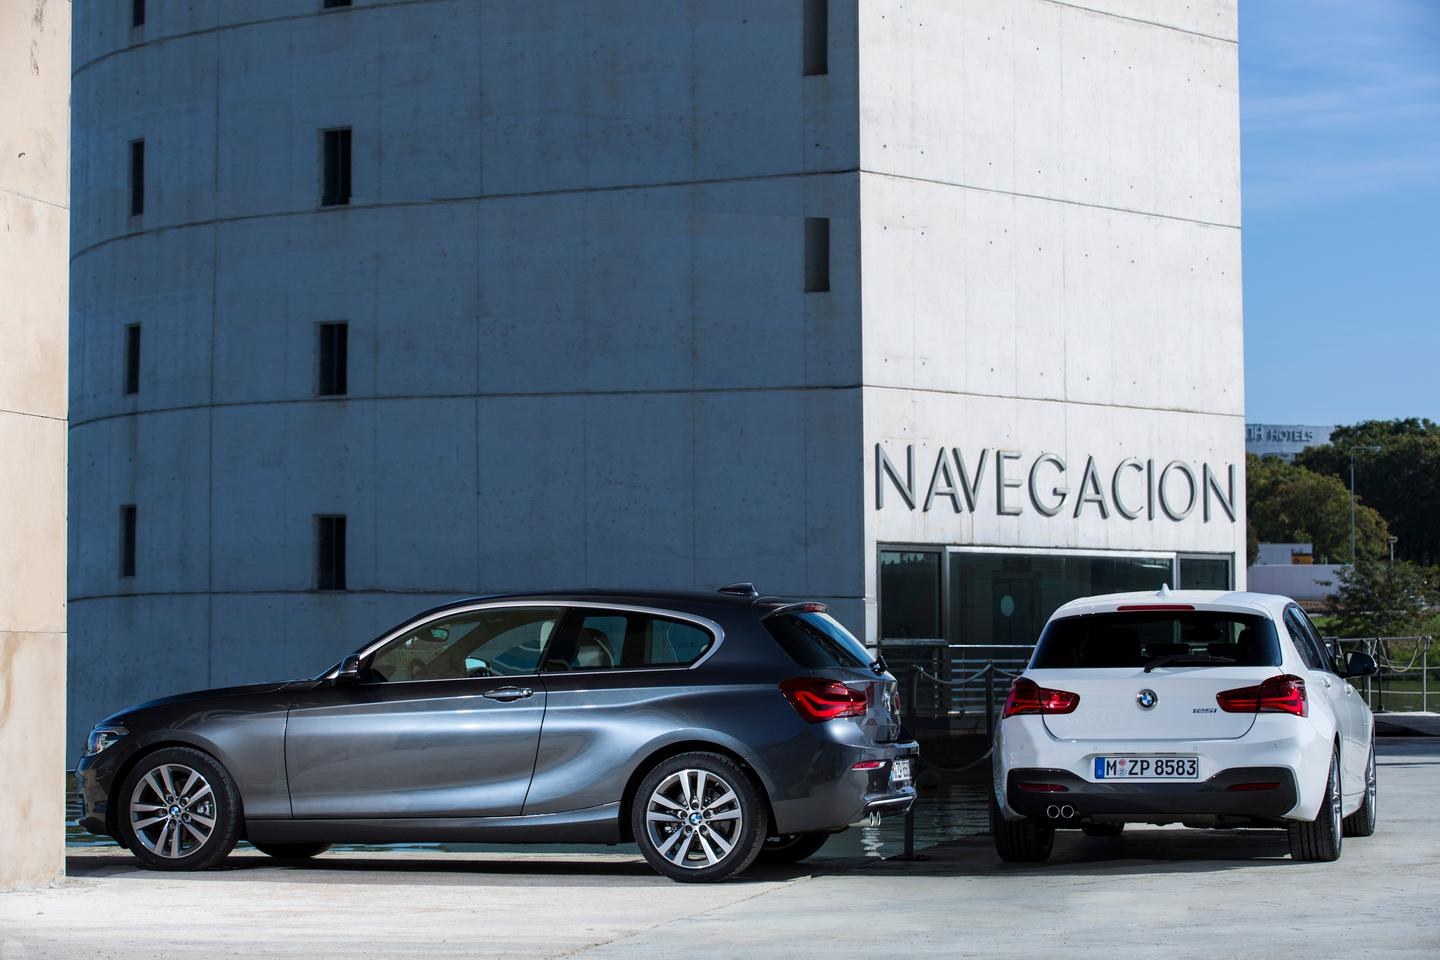 The latest 1-Series' styling has been thoroughly reworked for 2015